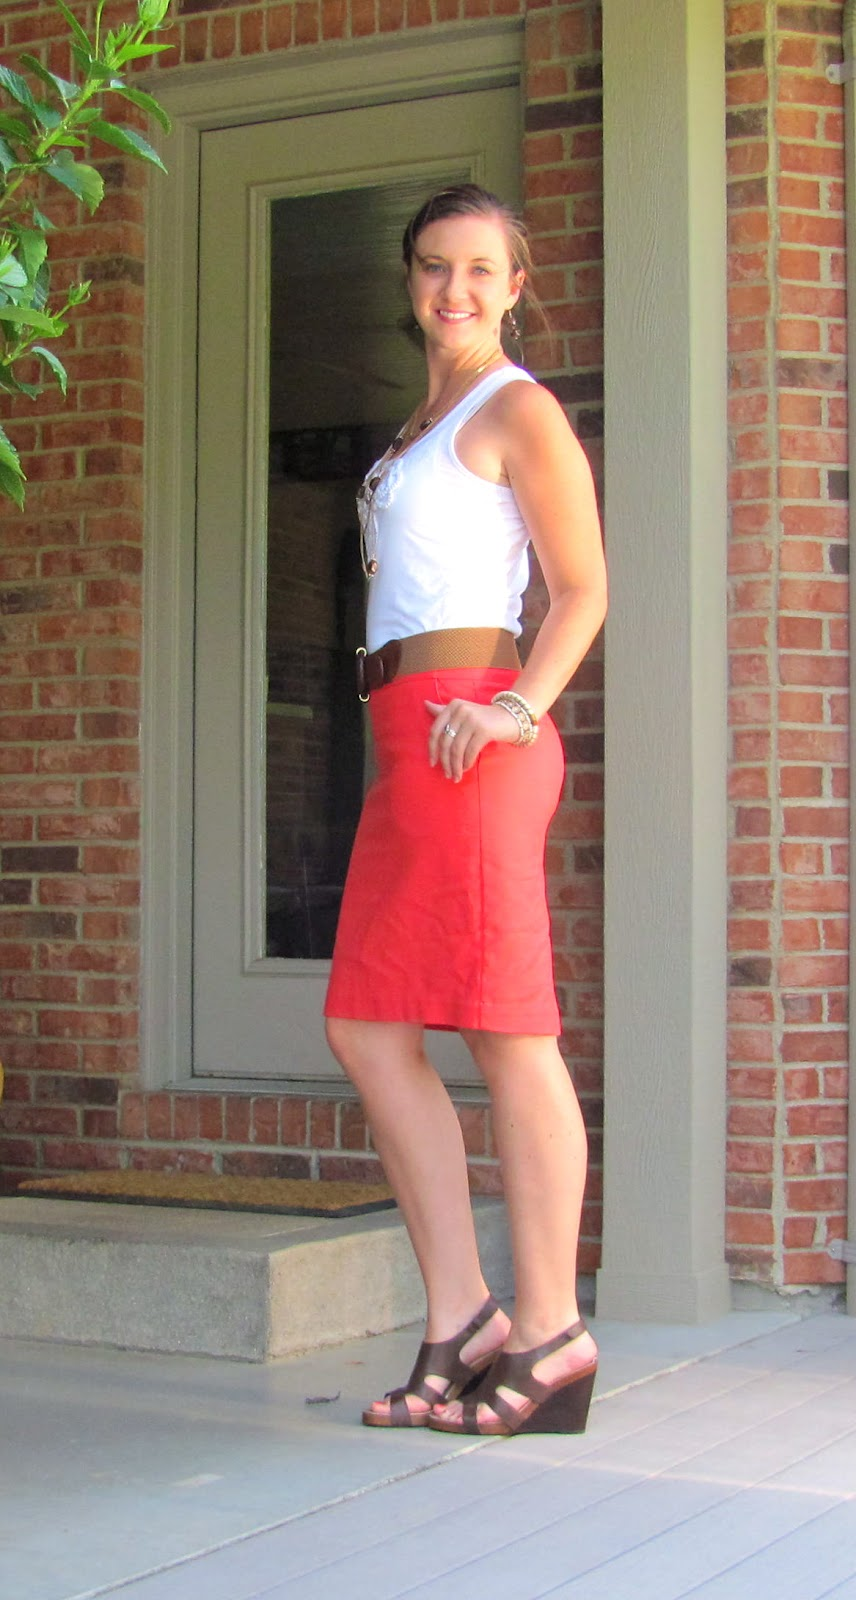 8f4f118998f18 Top  Old Navy    Skirt  Target    Belt  JcPenney    Shoes  DSW    Jewelry  Forever  21